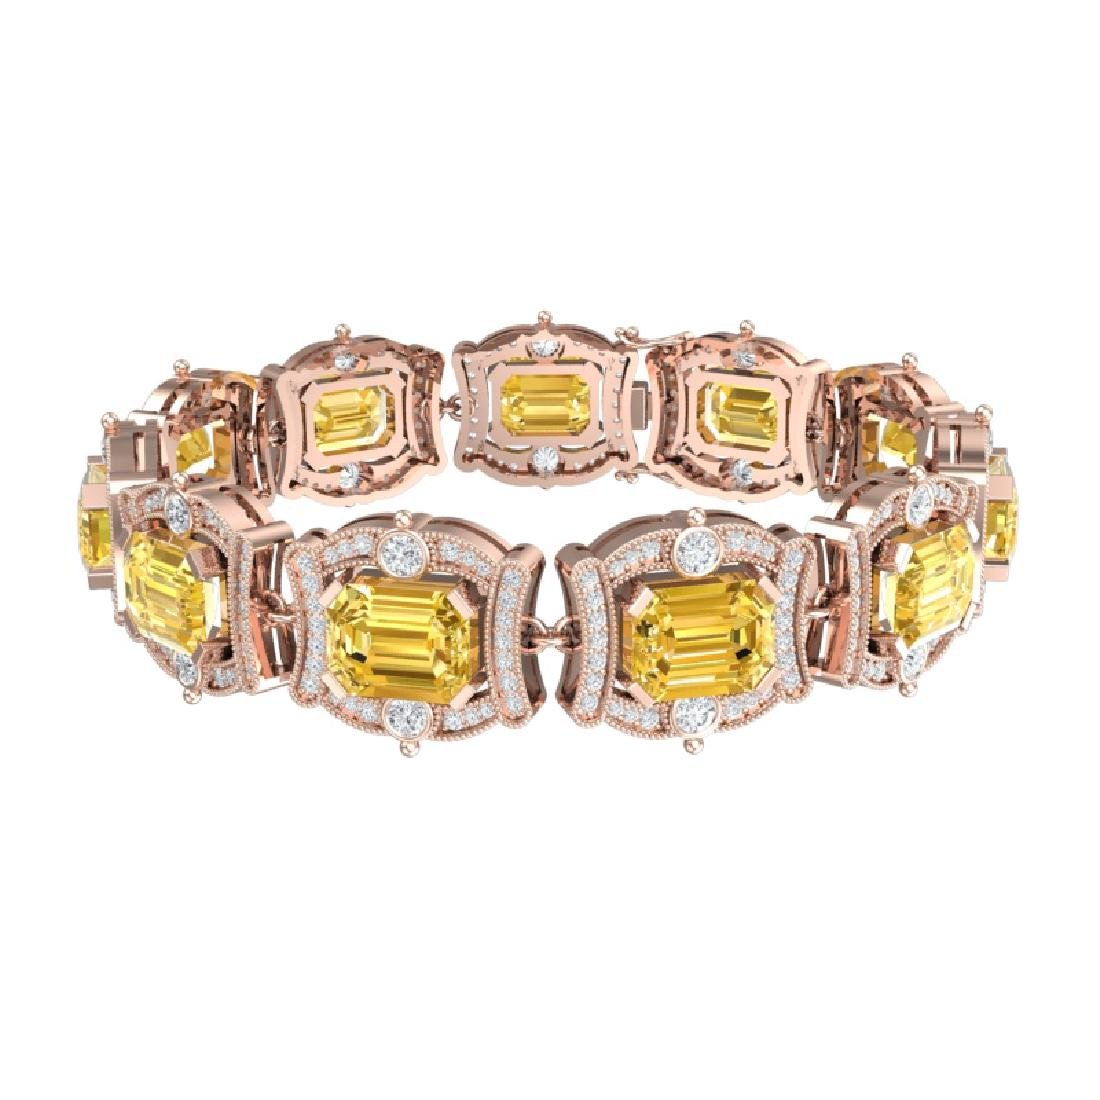 37.15 CTW Royalty Canary Citrine & VS Diamond Bracelet - 3